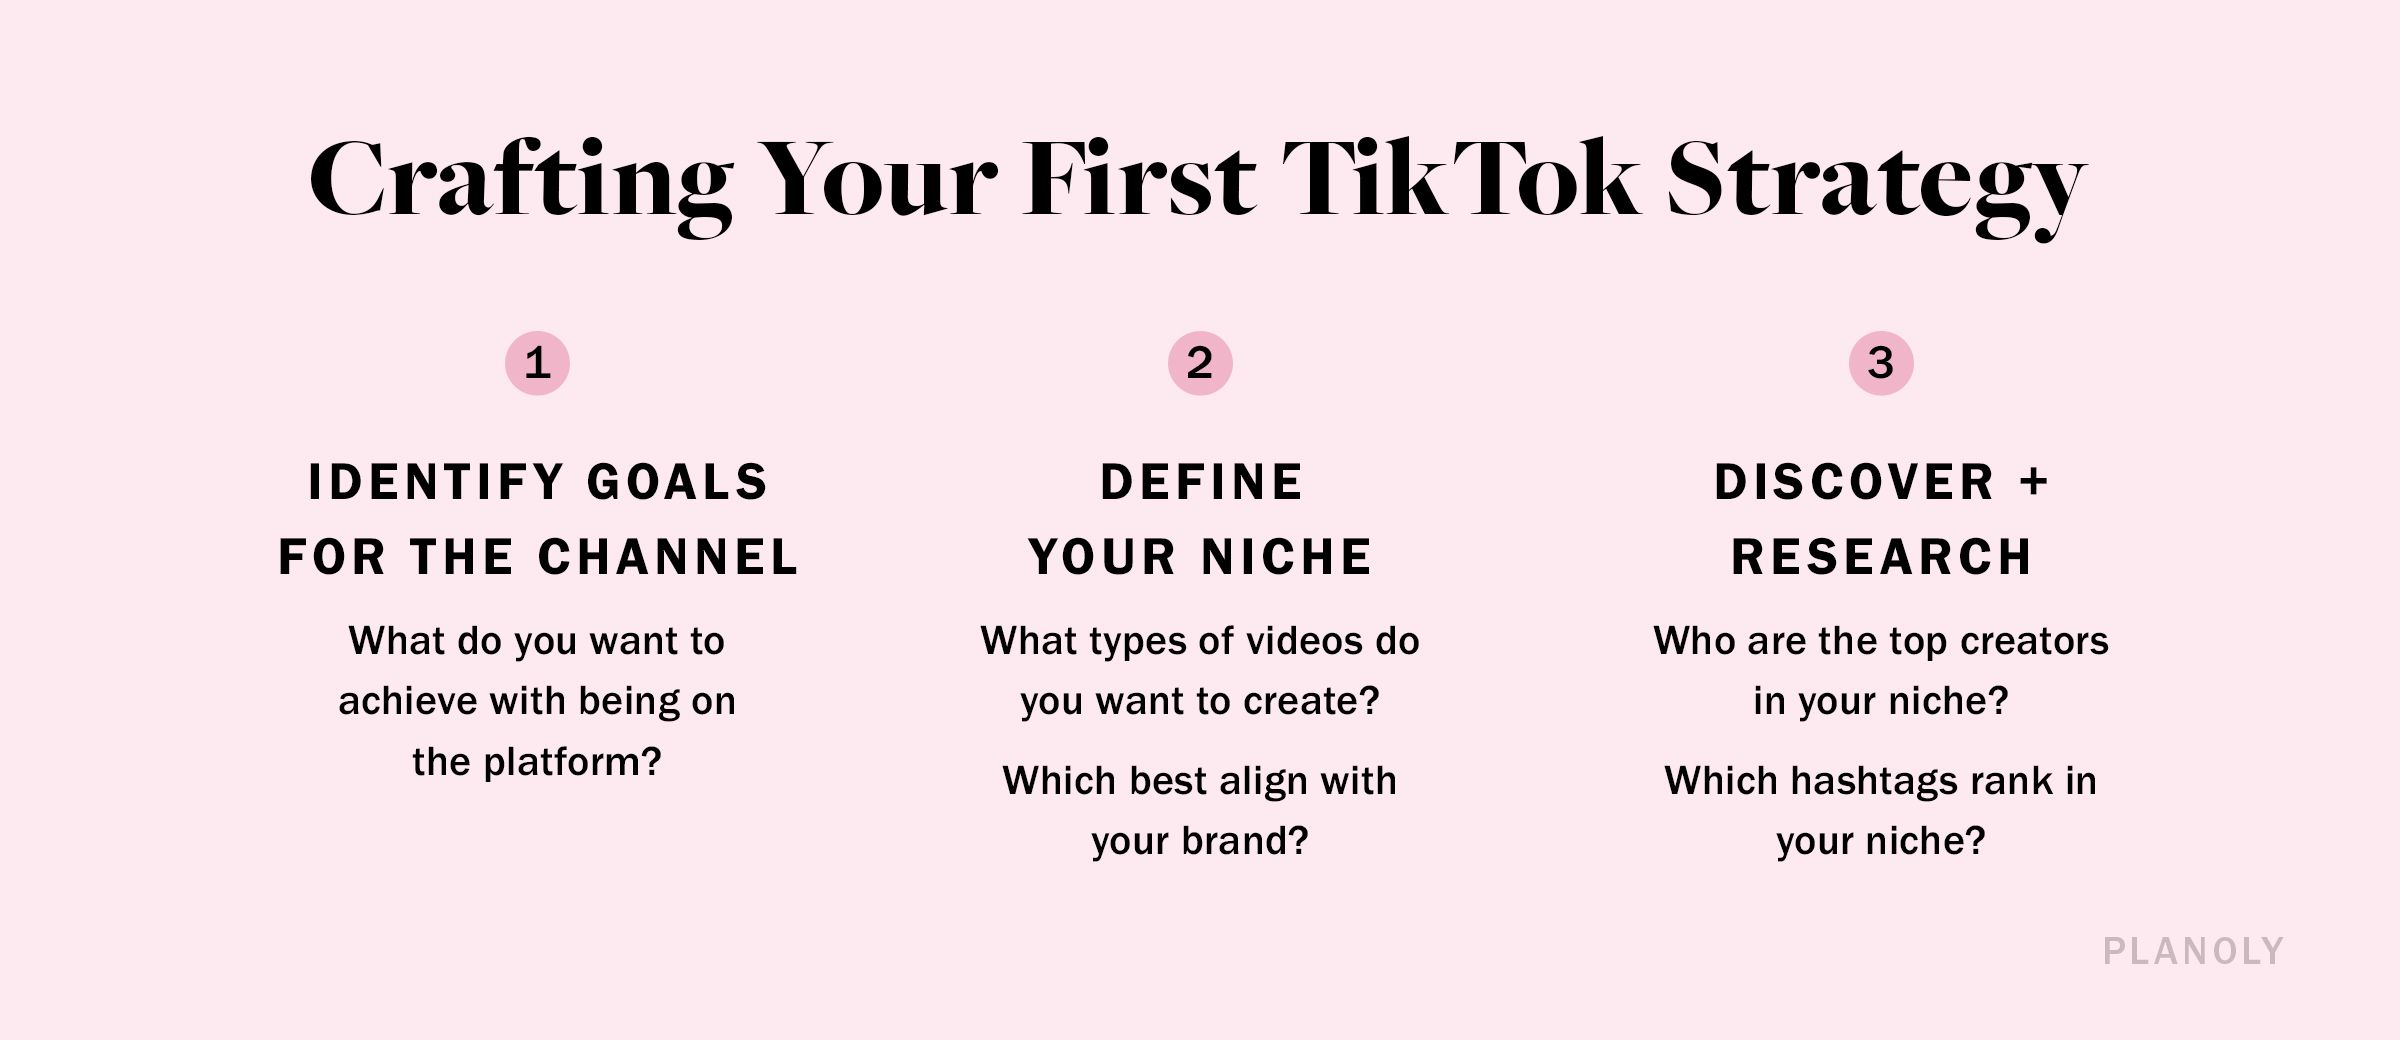 PLANOLY - Blog Post - Creating Your First TikTok Strategy - Image 1